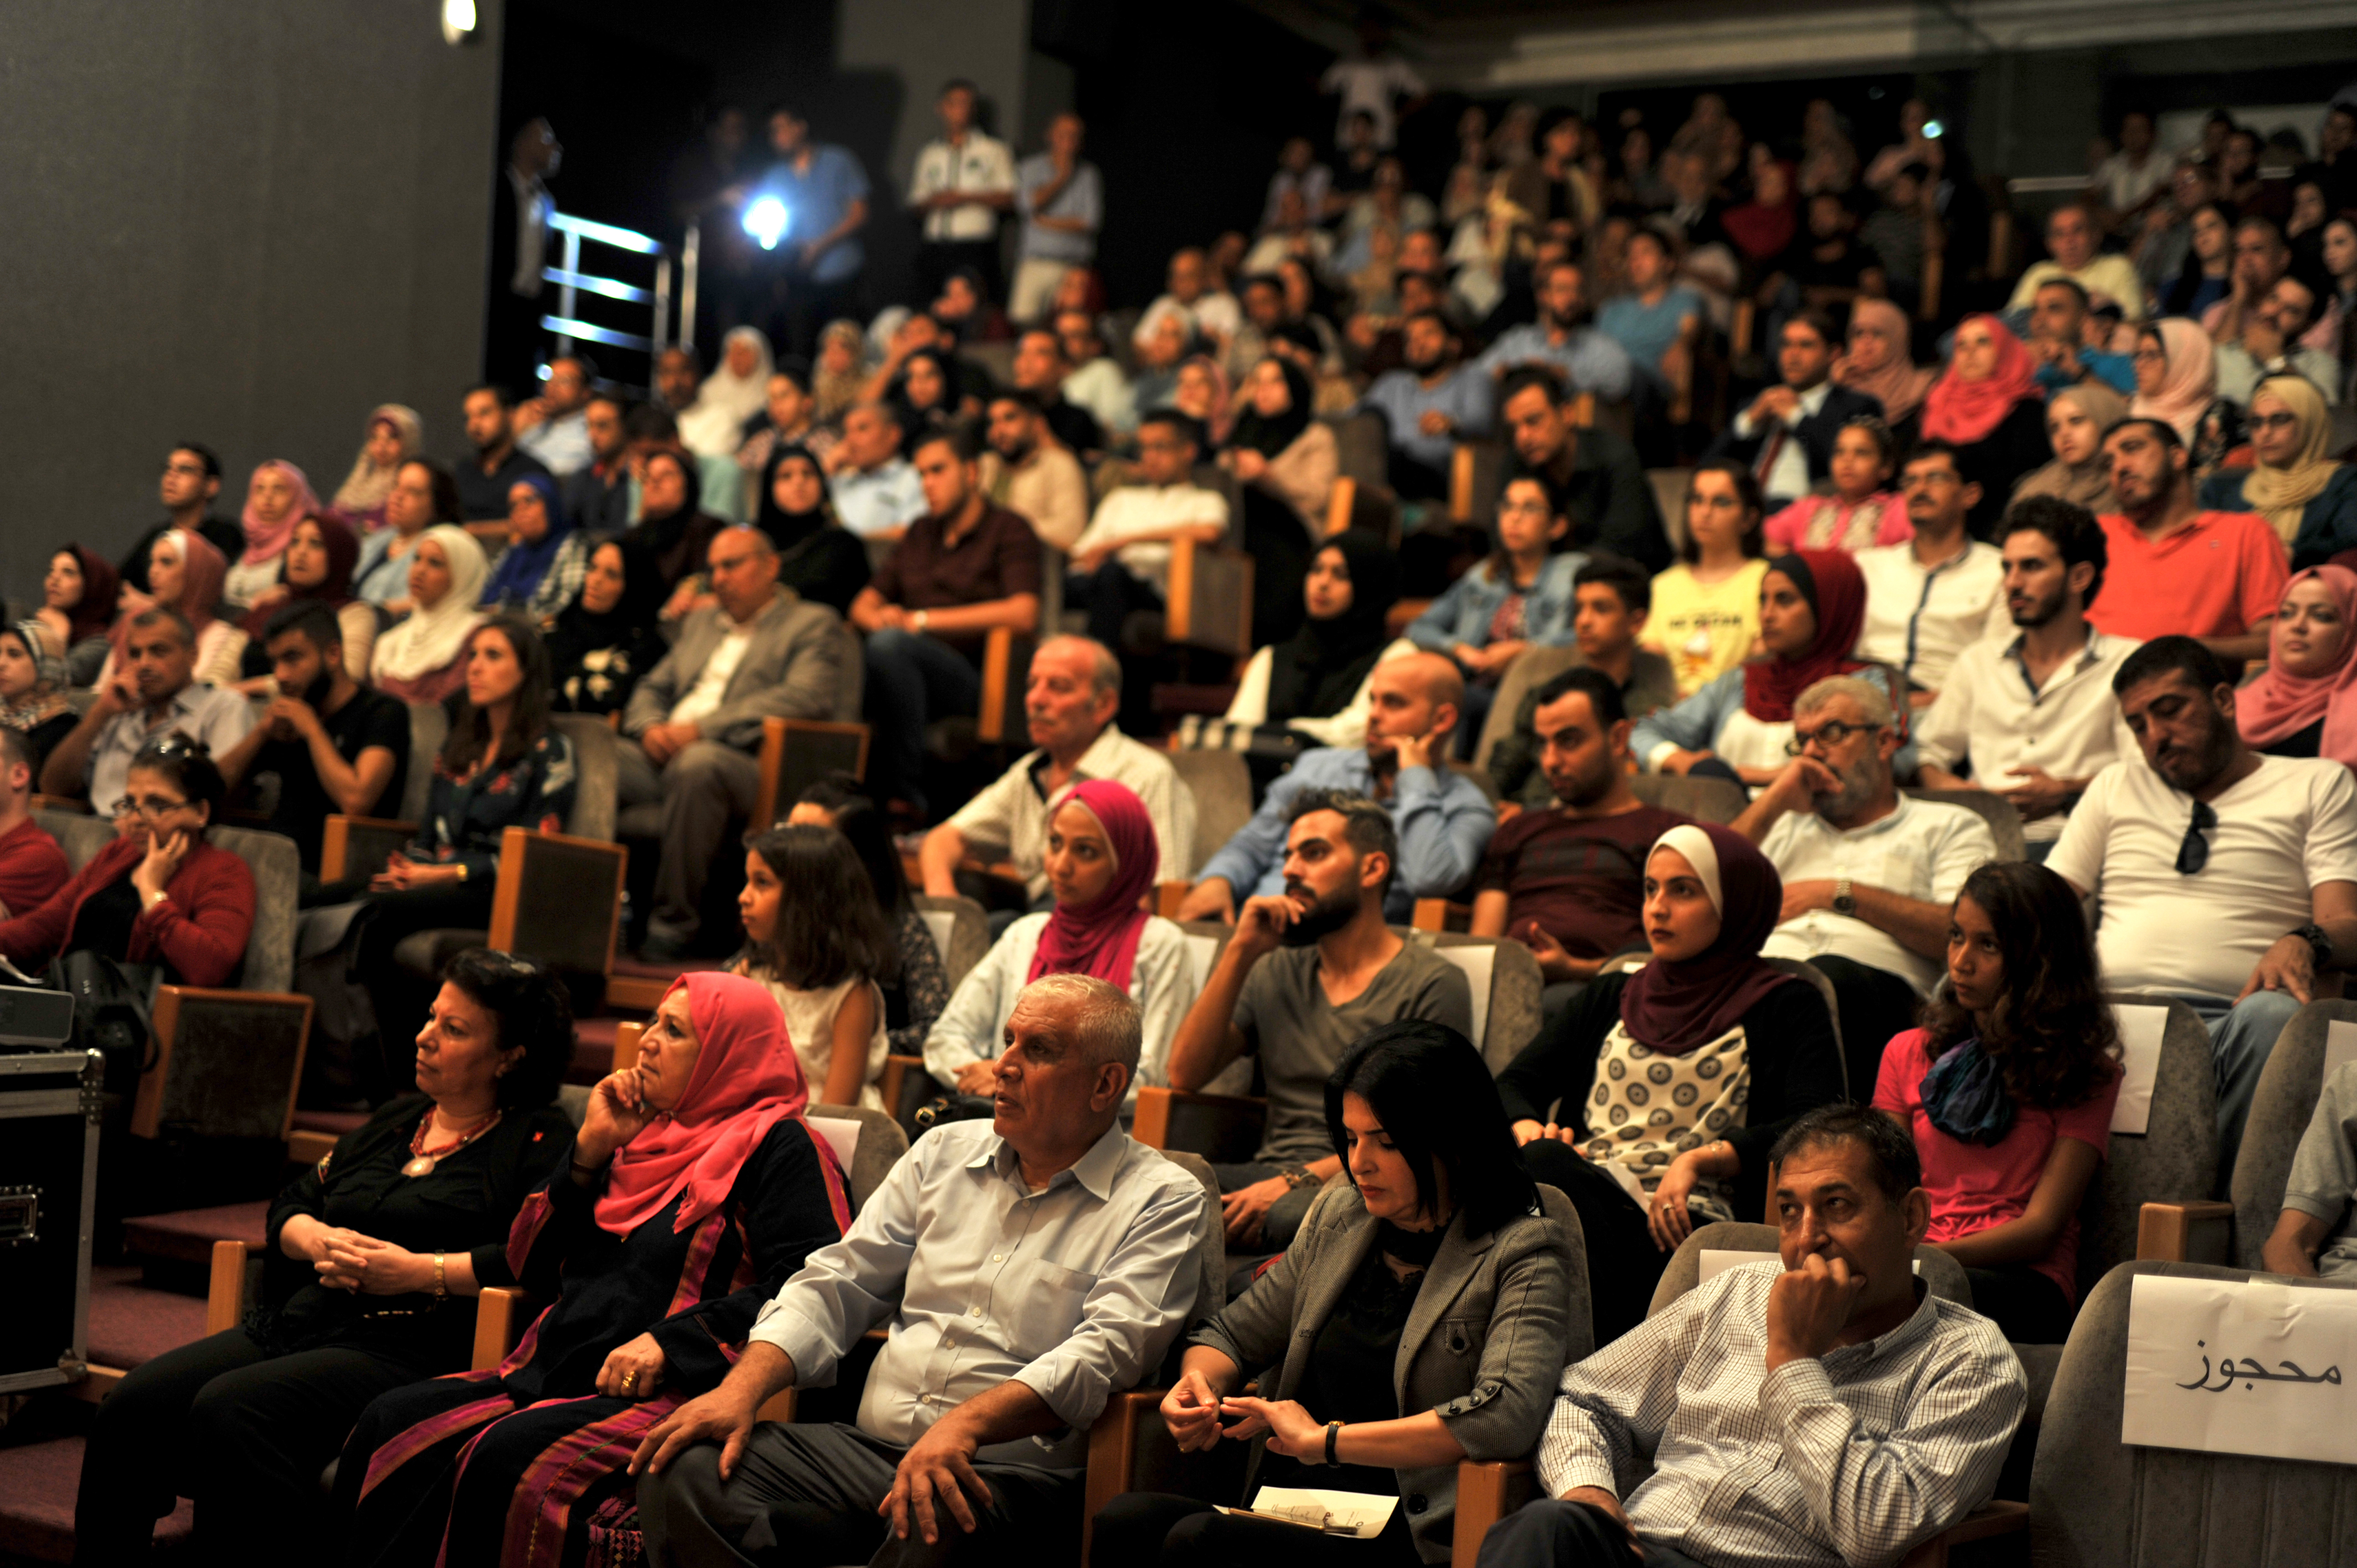 A full house at the premiere of Naila and the Uprising at the Red Crescent Cinema Hall in the Gaza Strip, September 2018. (Shareef Sarhan)